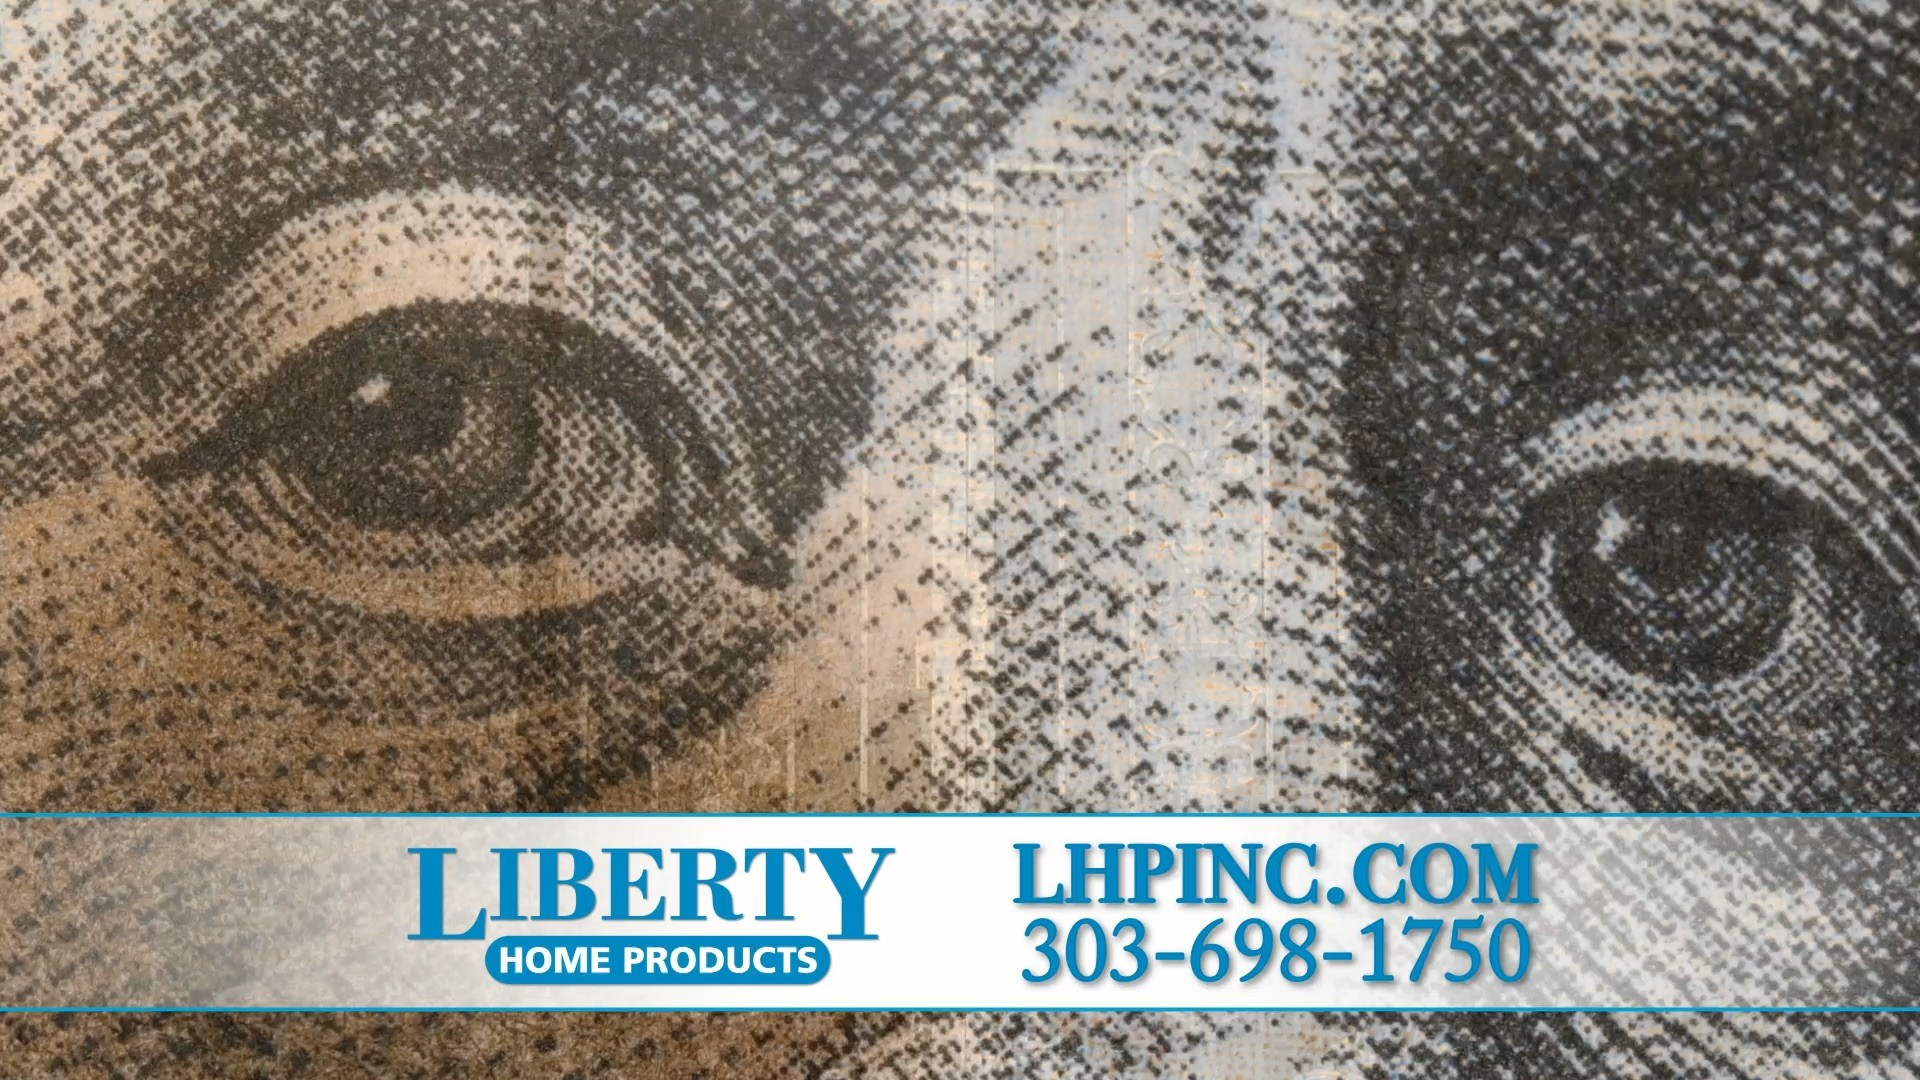 Liberty Home Products: Save Money